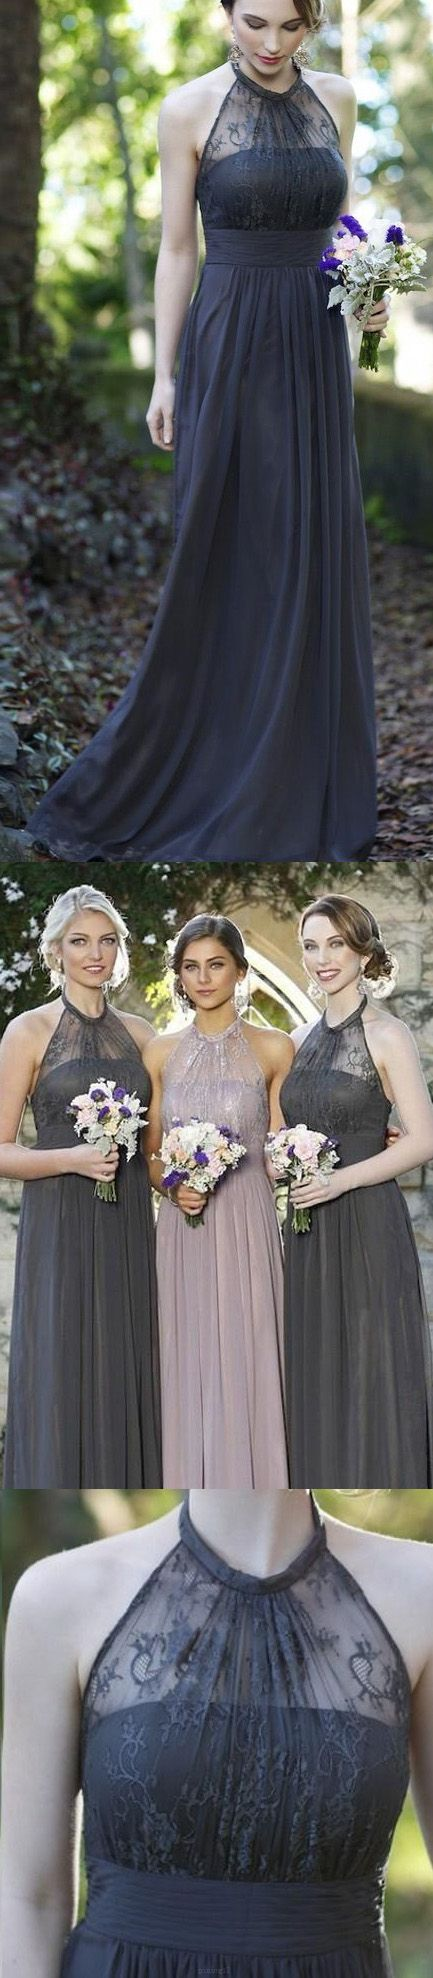 Custom made long bridesmaid dress cute navy bridesmaid dresses with